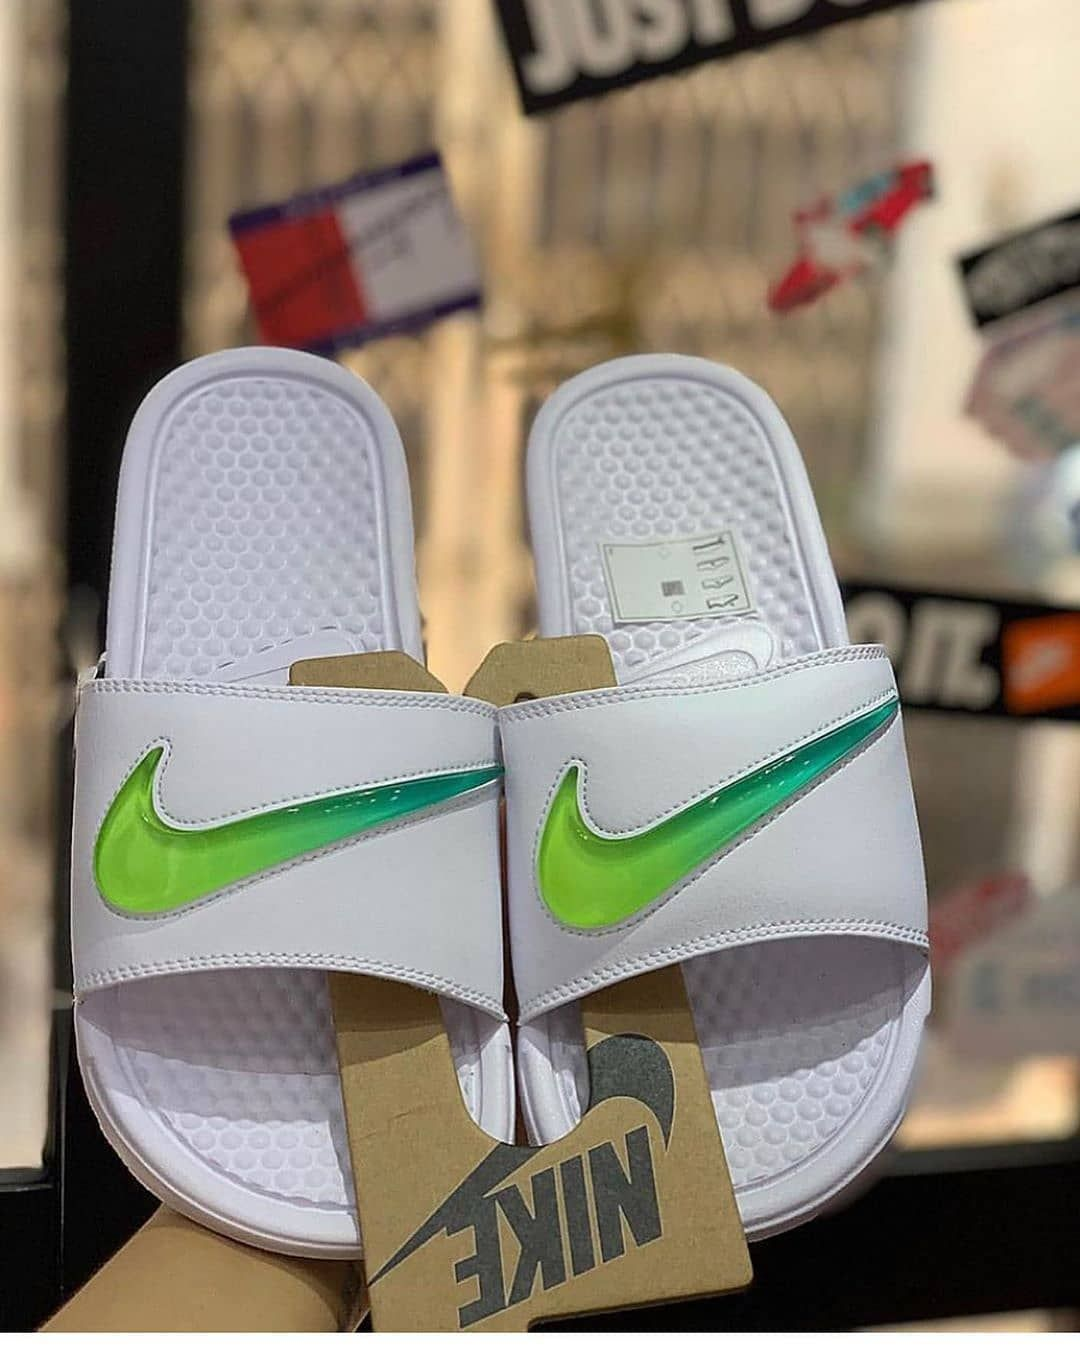 juego caliente graduado  Nike Benassi Jelly Swoosh Available at 15k Nationwide Delivery Service  Comes with Complete Nike Benassi Jelly Swoosh Available… | Nike benassi,  Nike, Nike slides